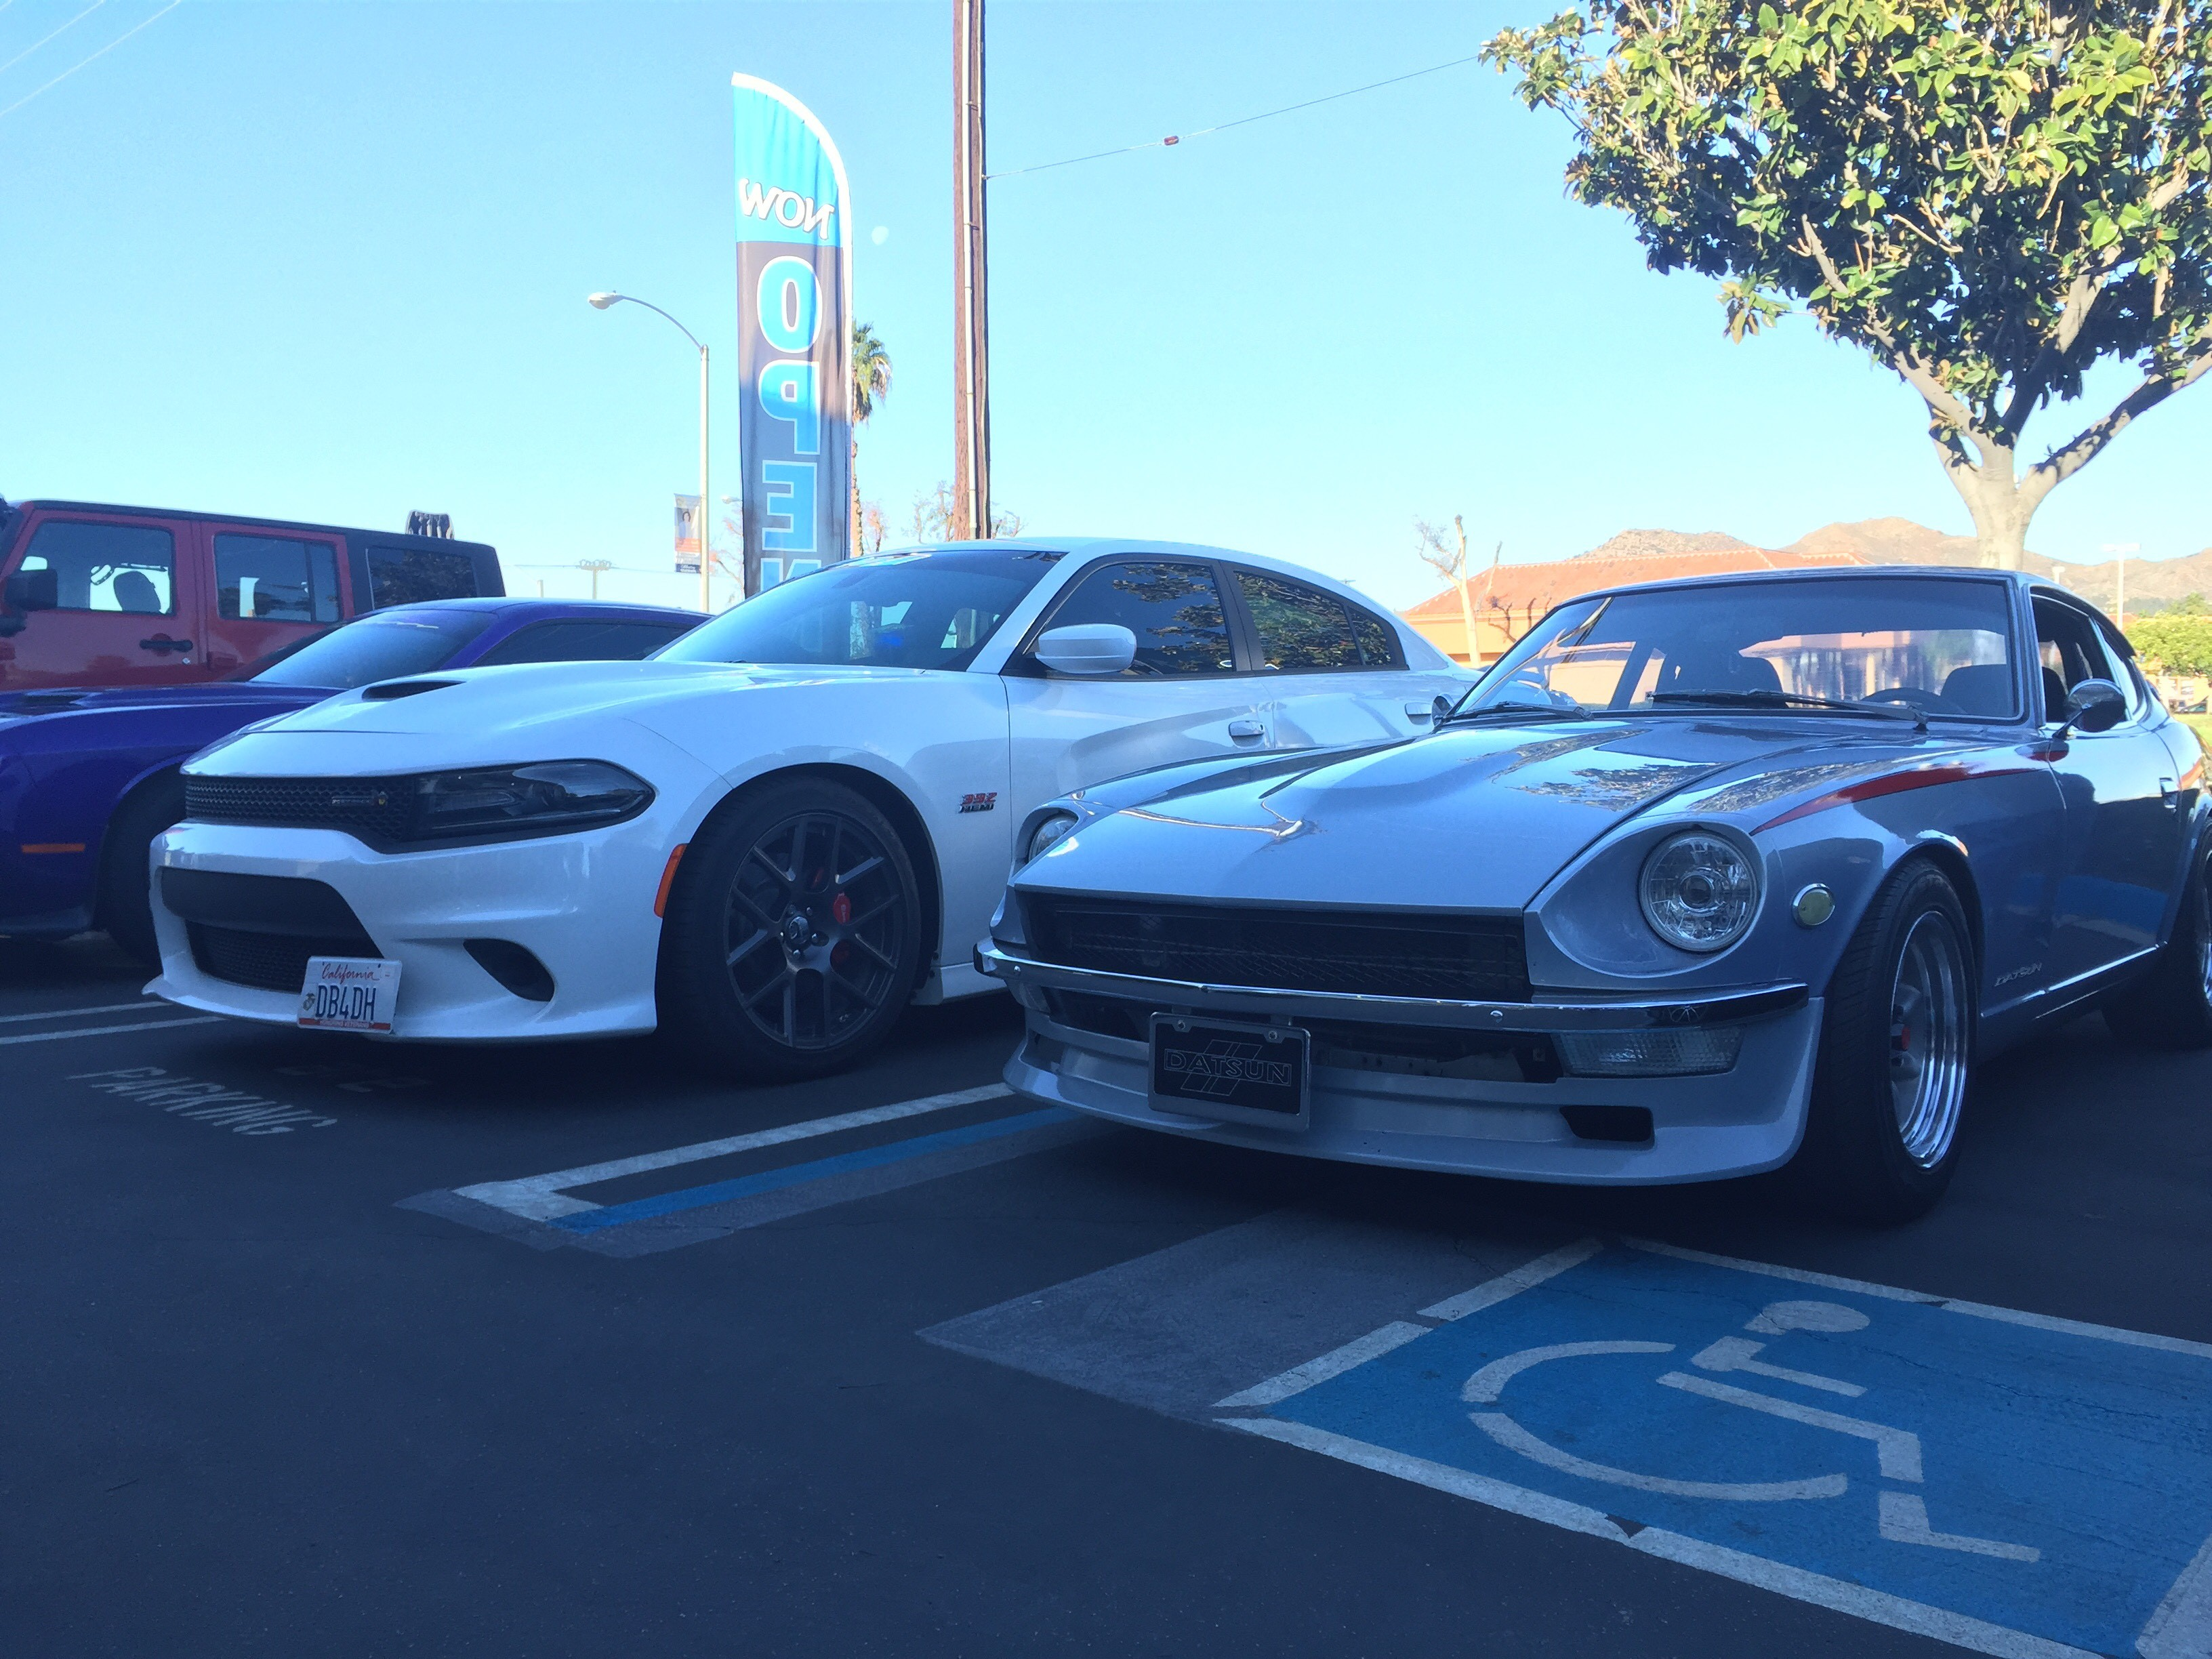 afe-cars-coffee-dec-2016-009